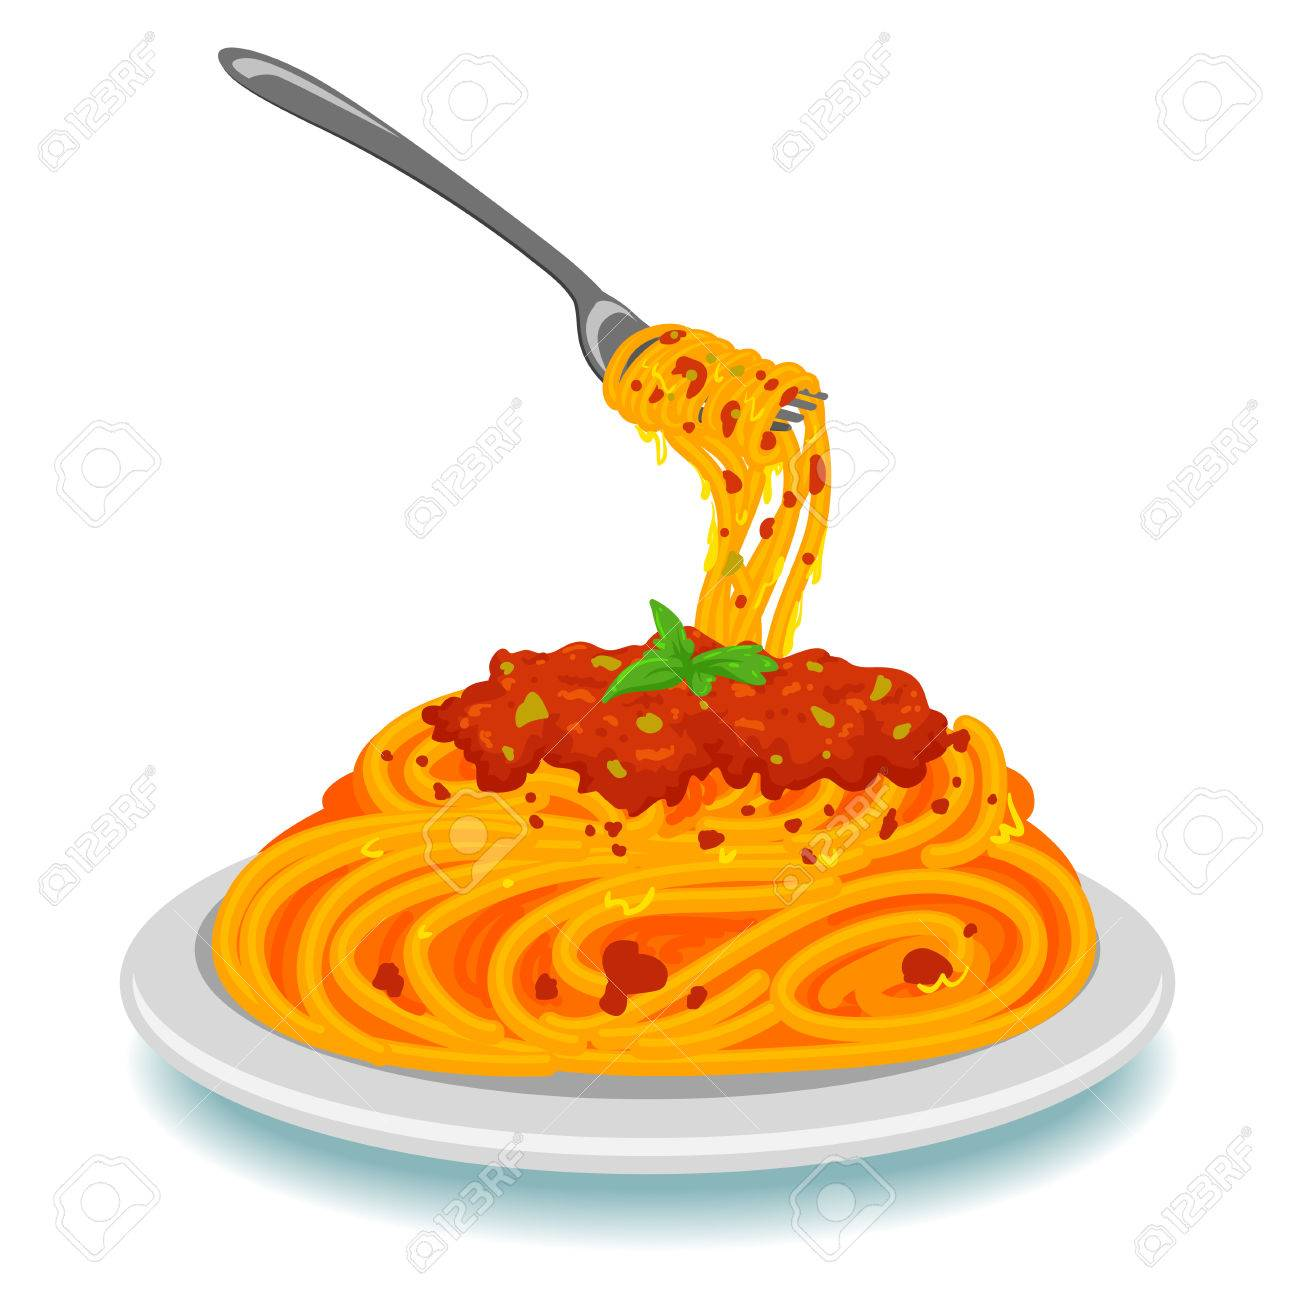 Vector Illustration Of Spaghetti With Fork On Plate Royalty Free ...